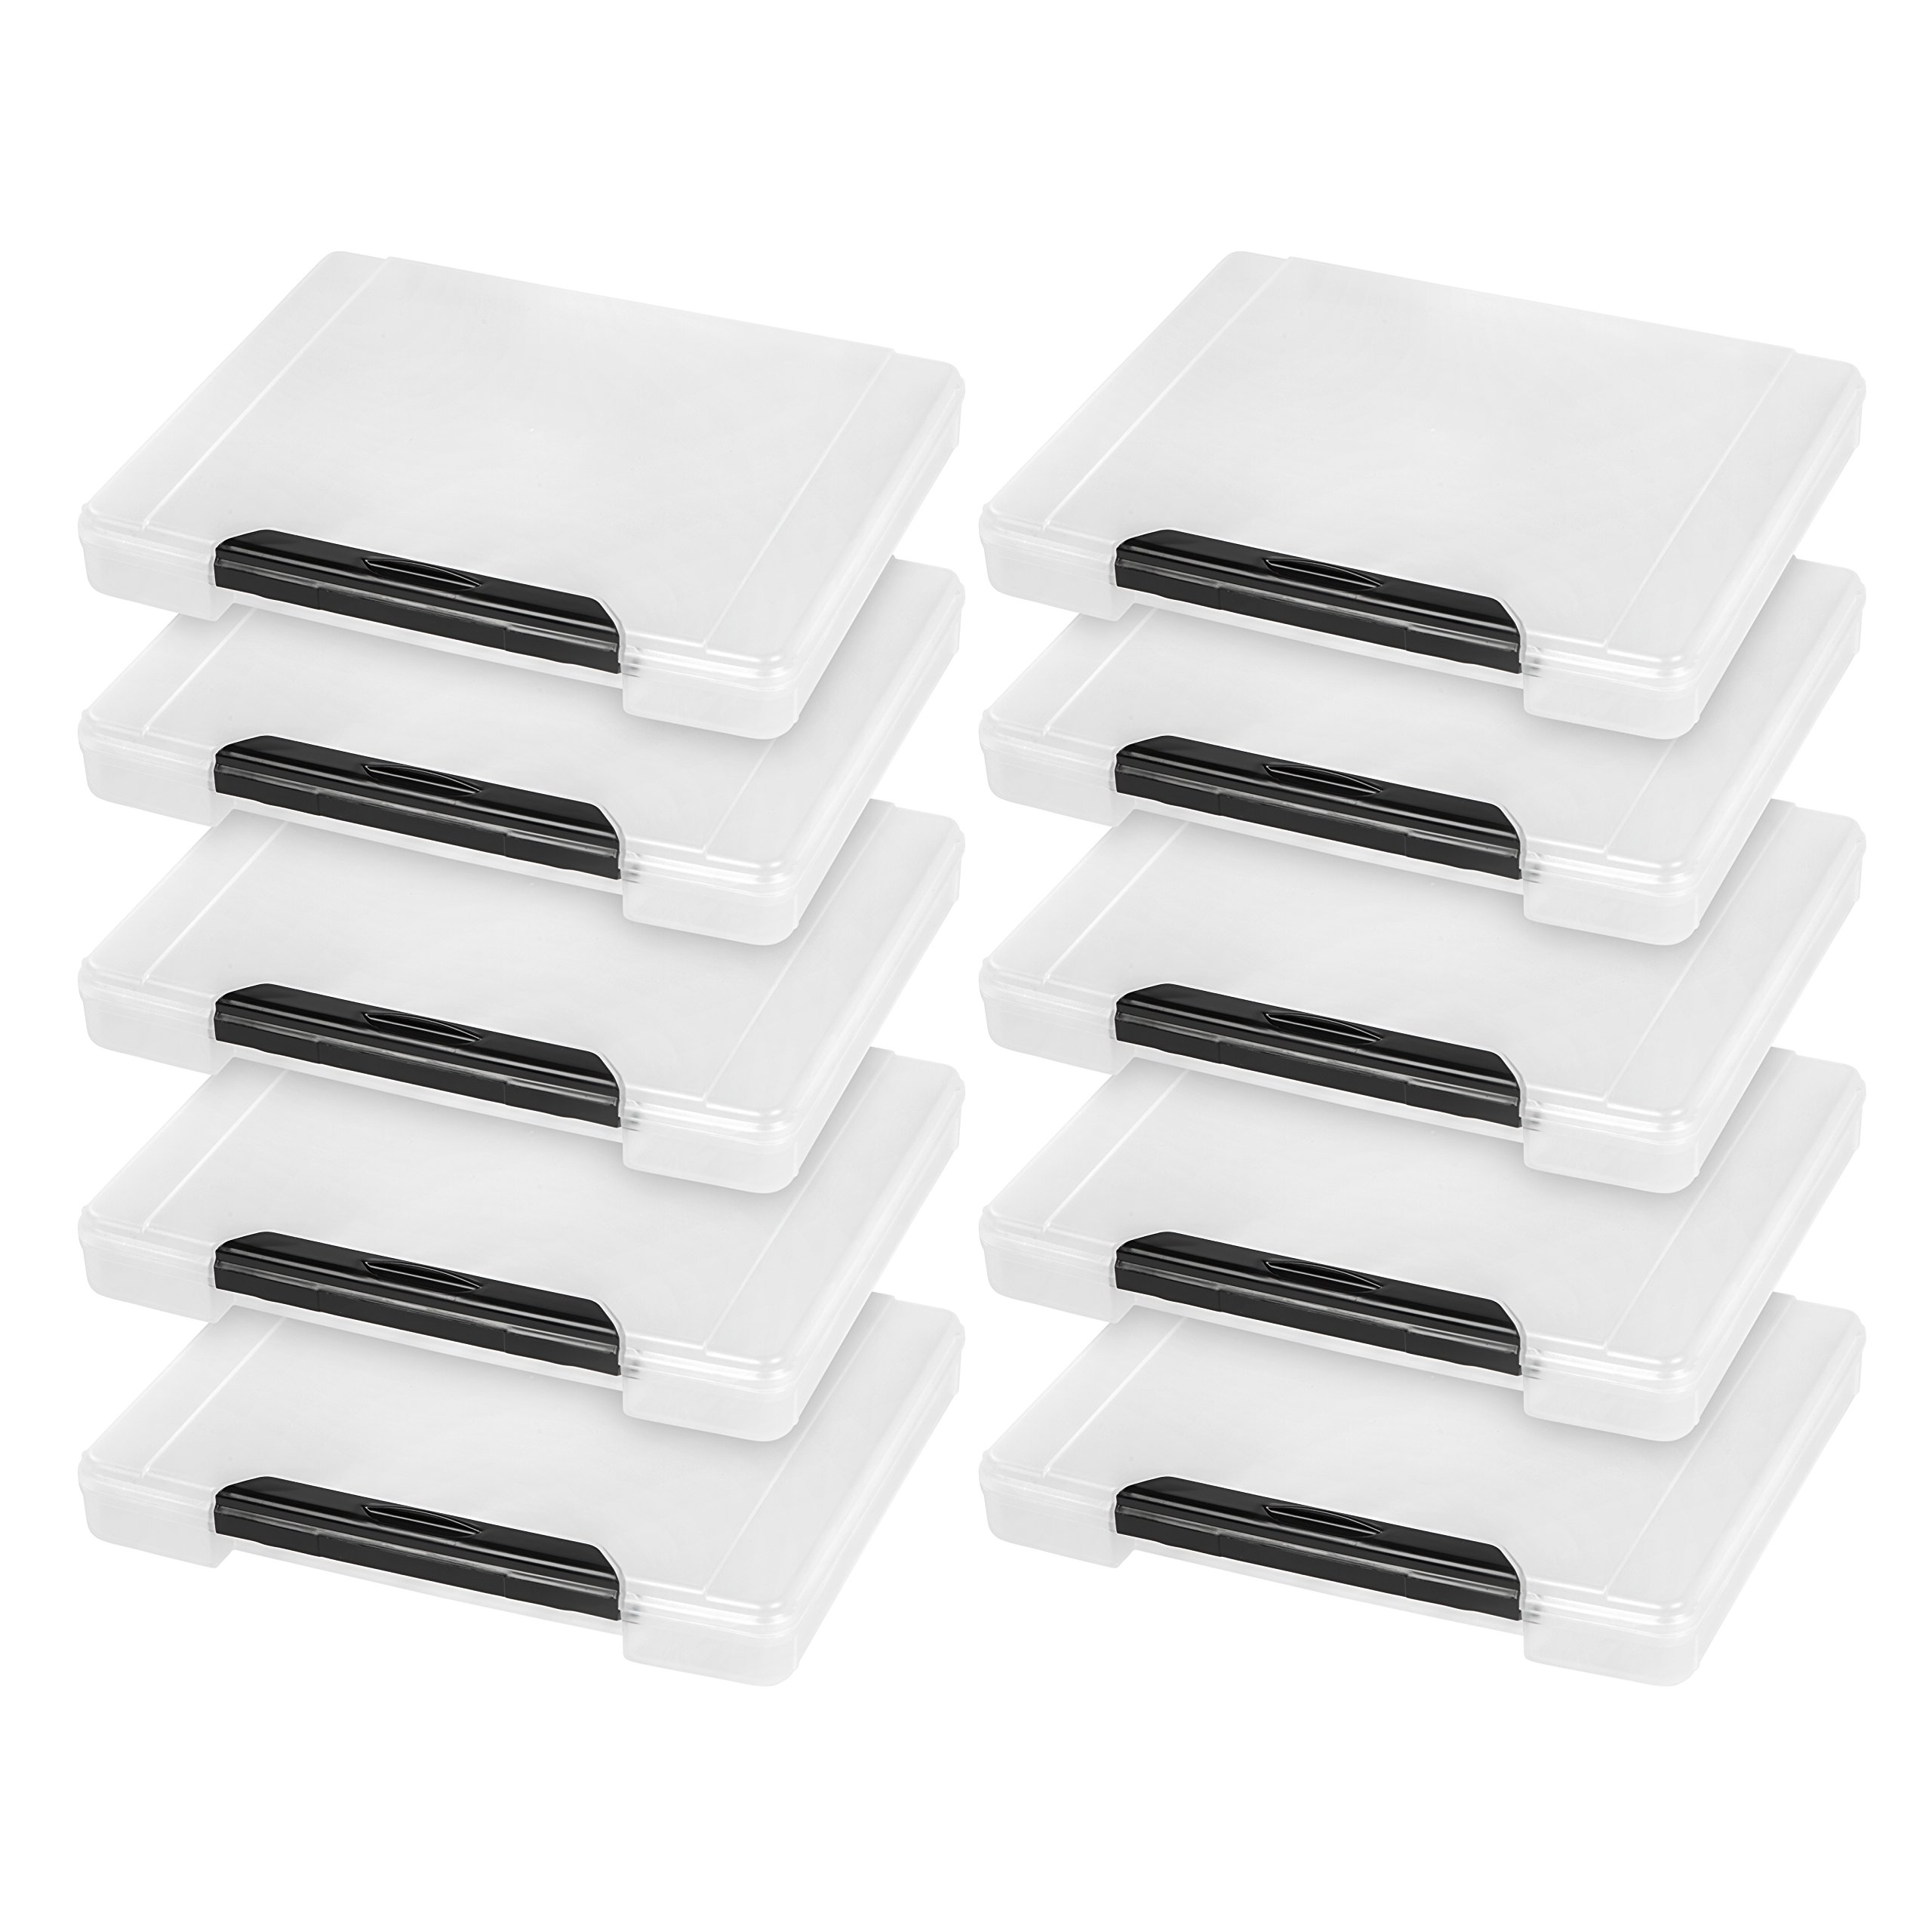 IRIS Portable Project Case with Buckle, 10 Pack, Clear